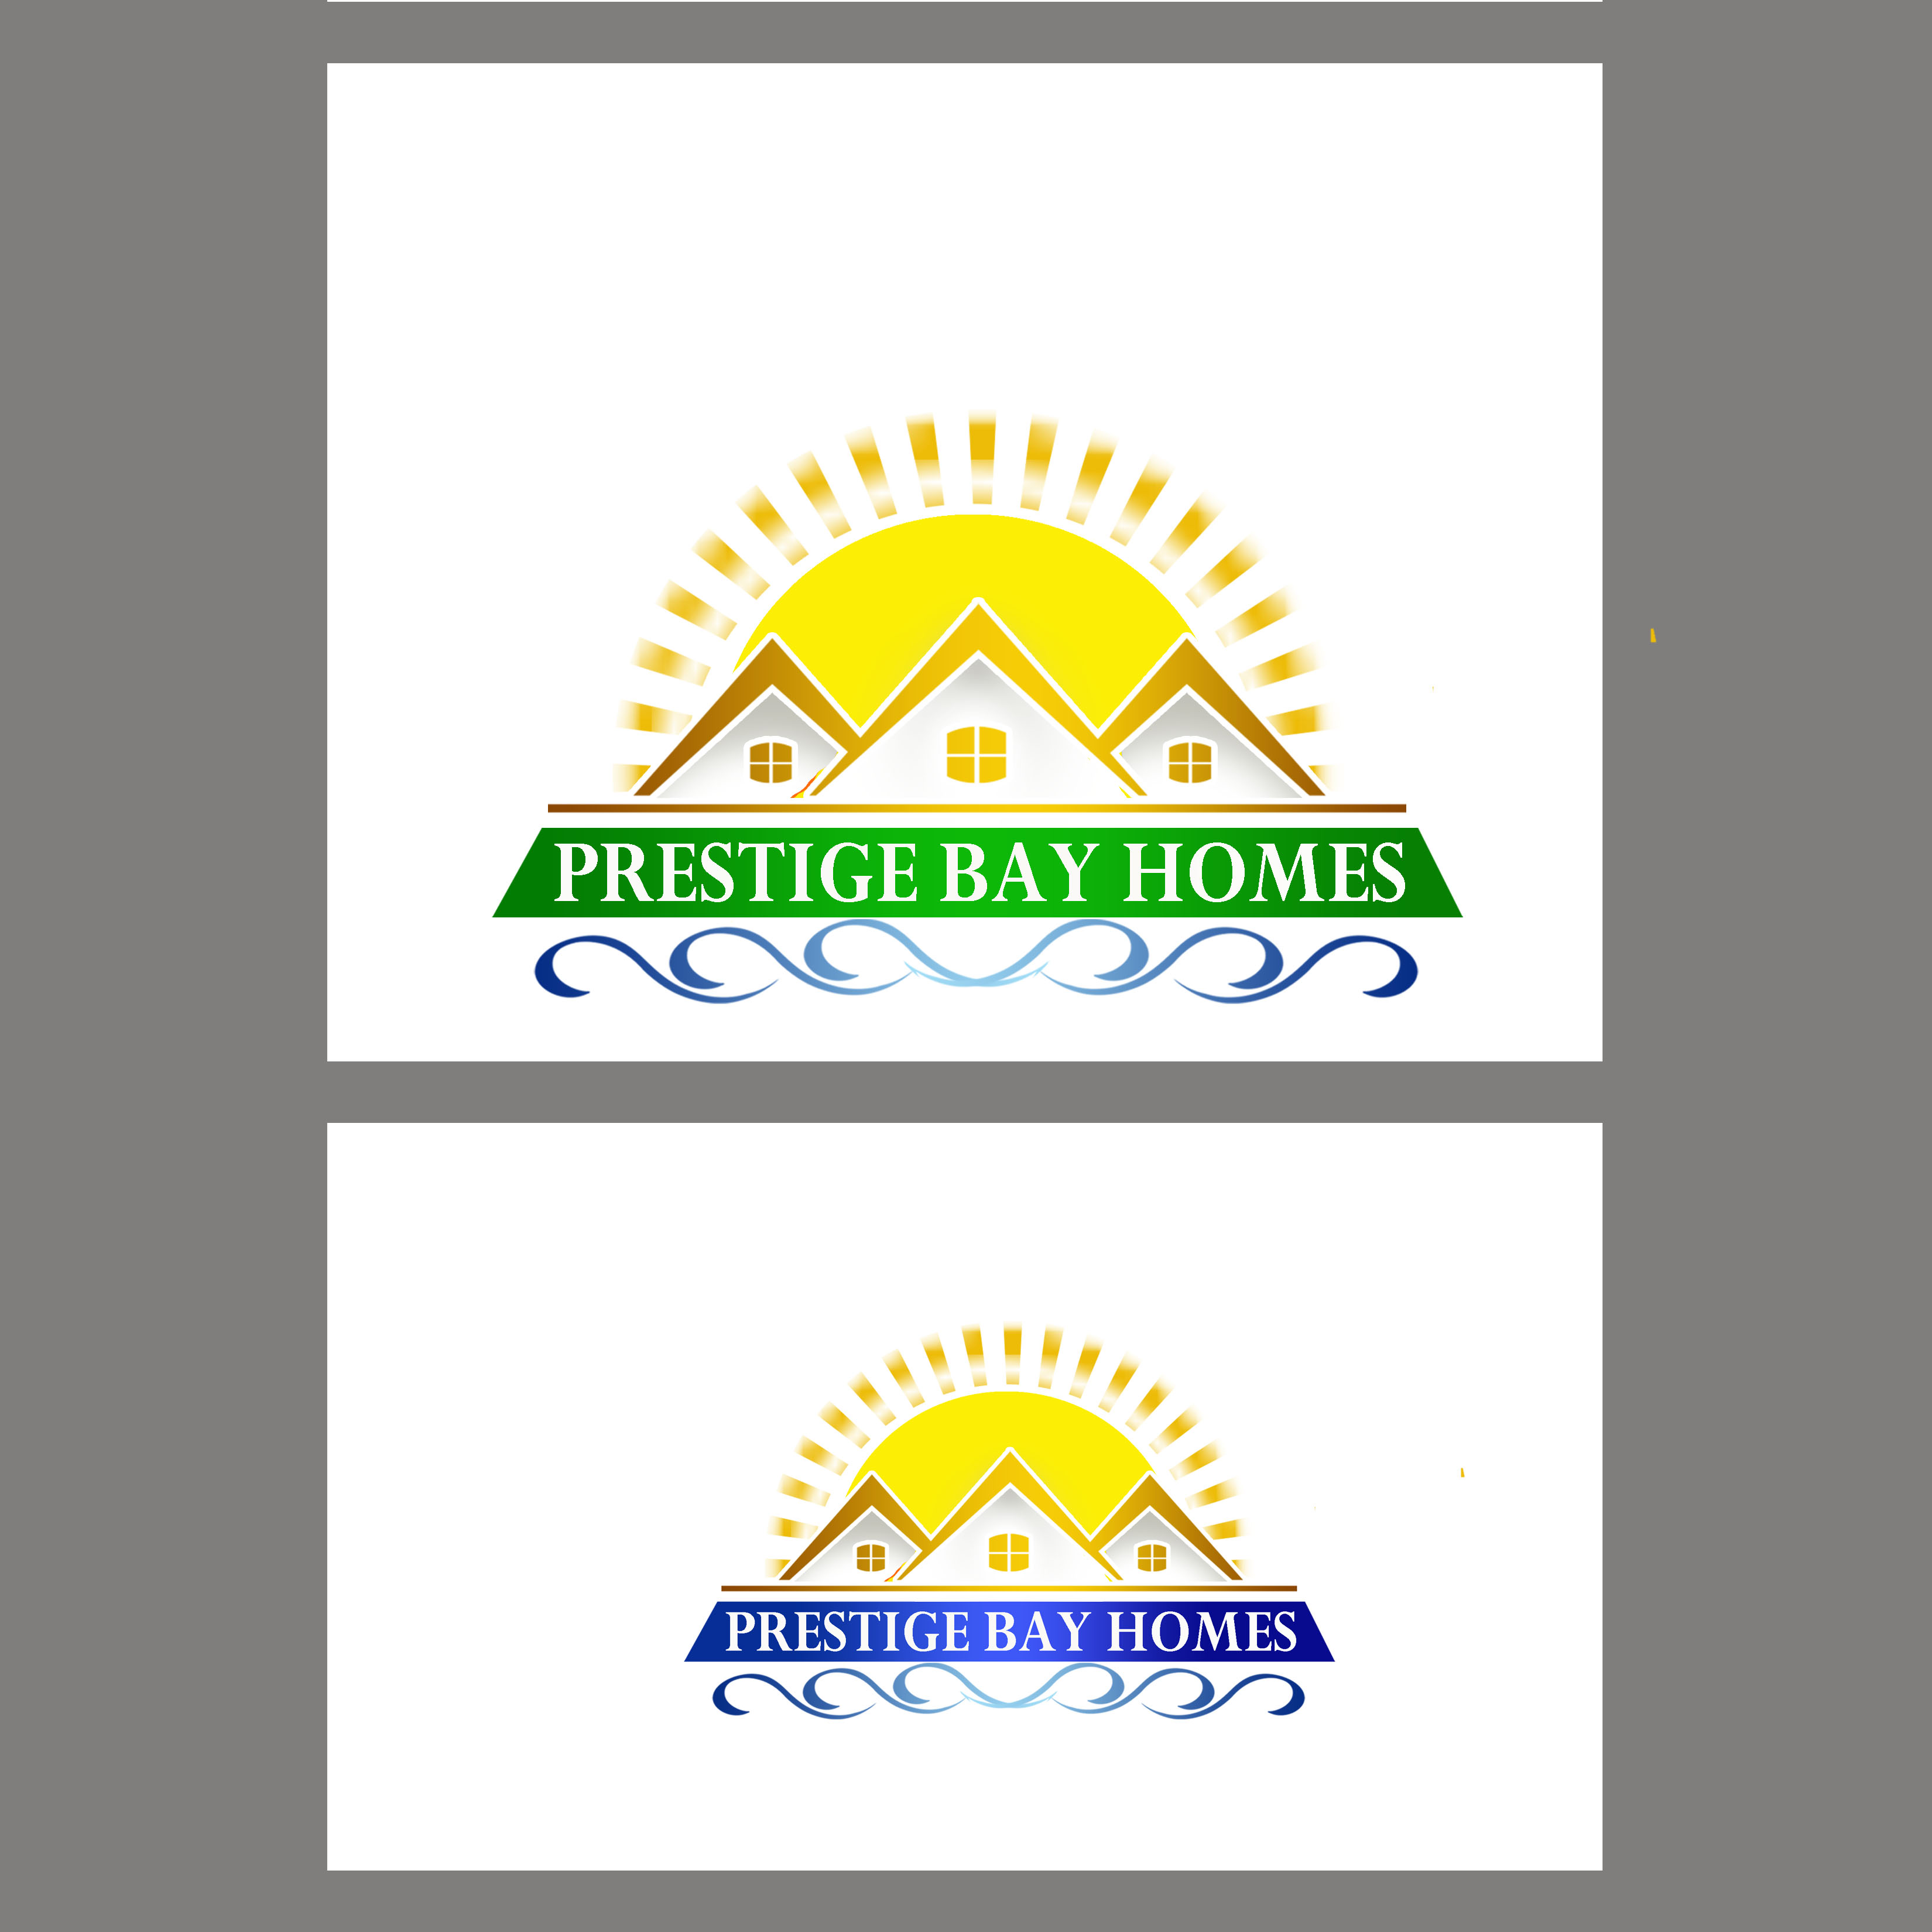 Logo Design by Allan Esclamado - Entry No. 9 in the Logo Design Contest Imaginative Logo Design for Prestige Bay Homes.